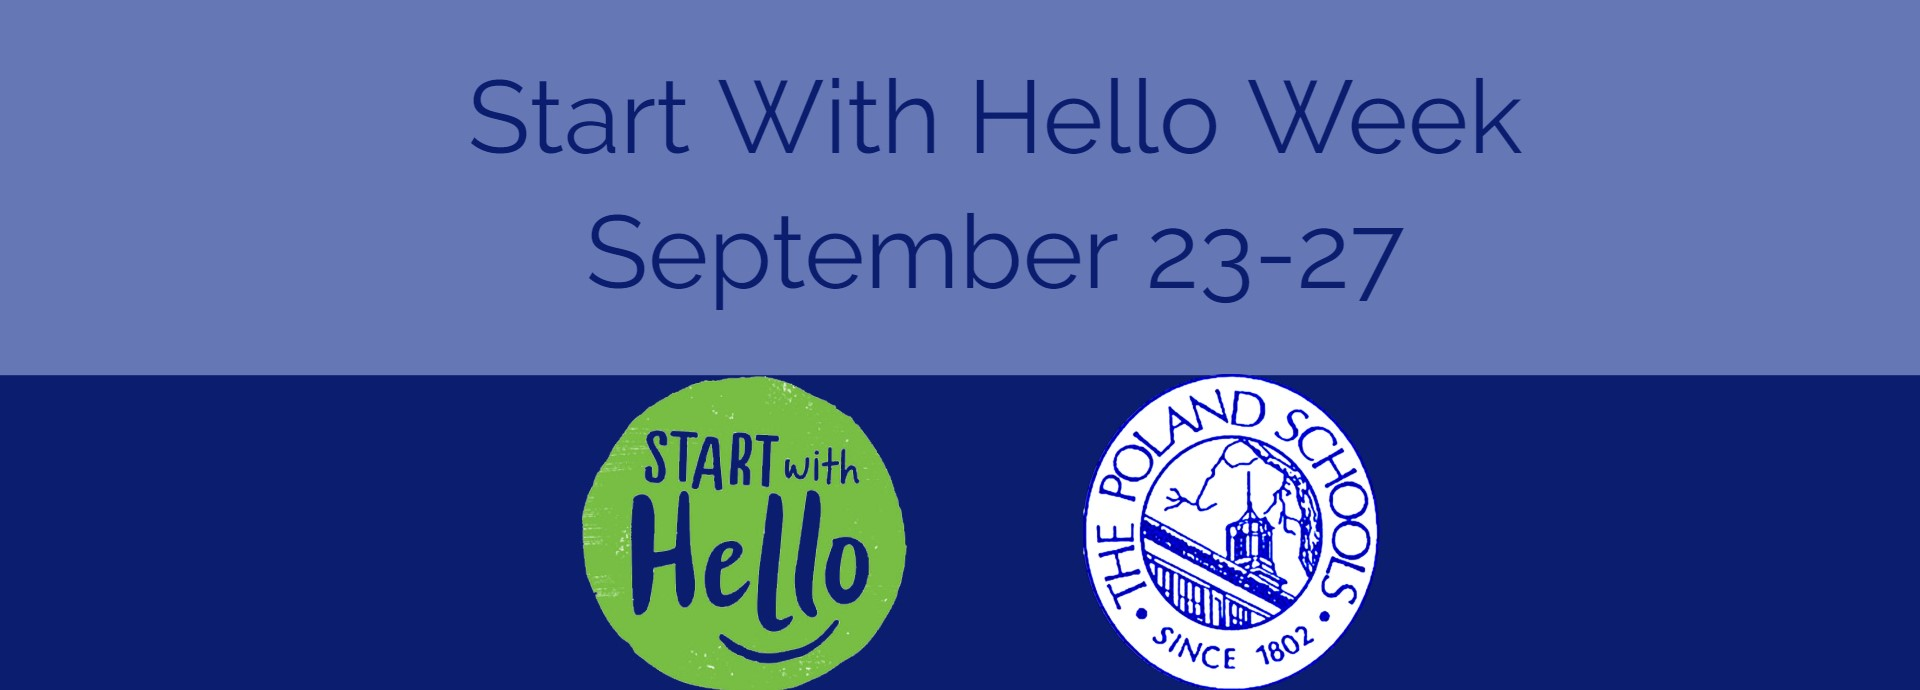 Start With Hello Week